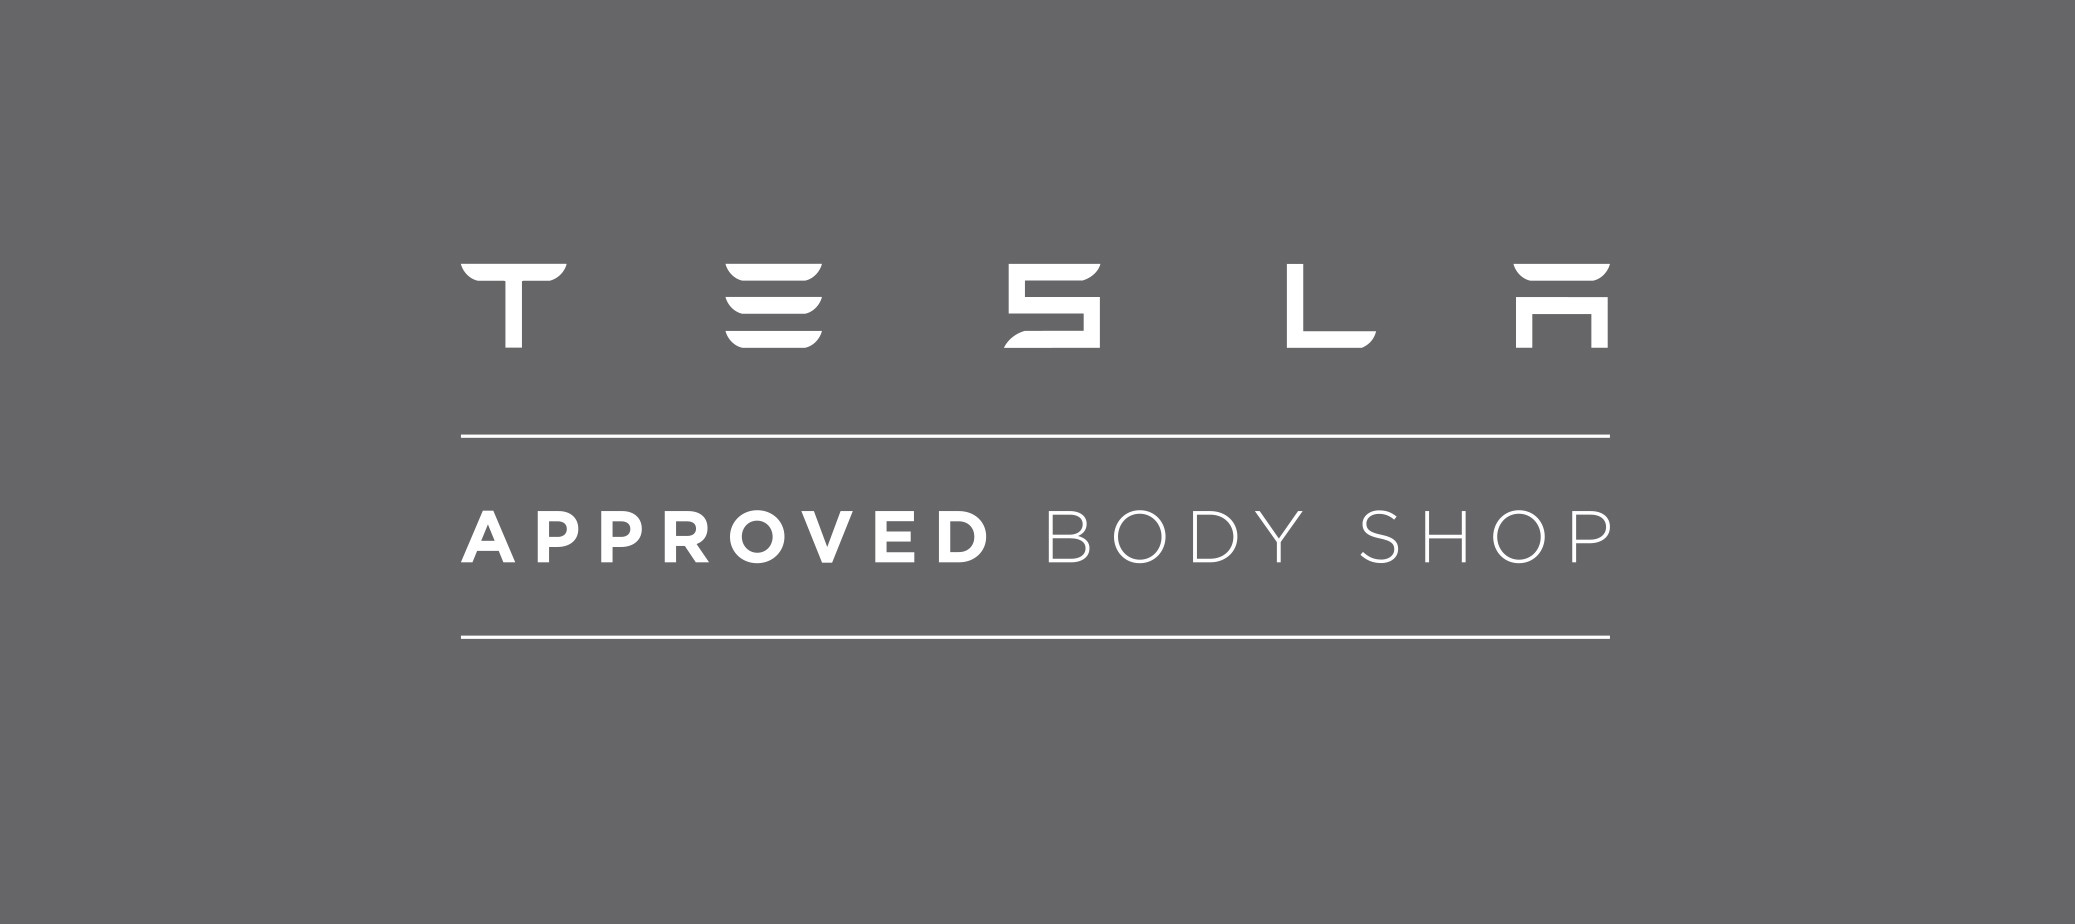 AW Achieve Tesla Structural Approval